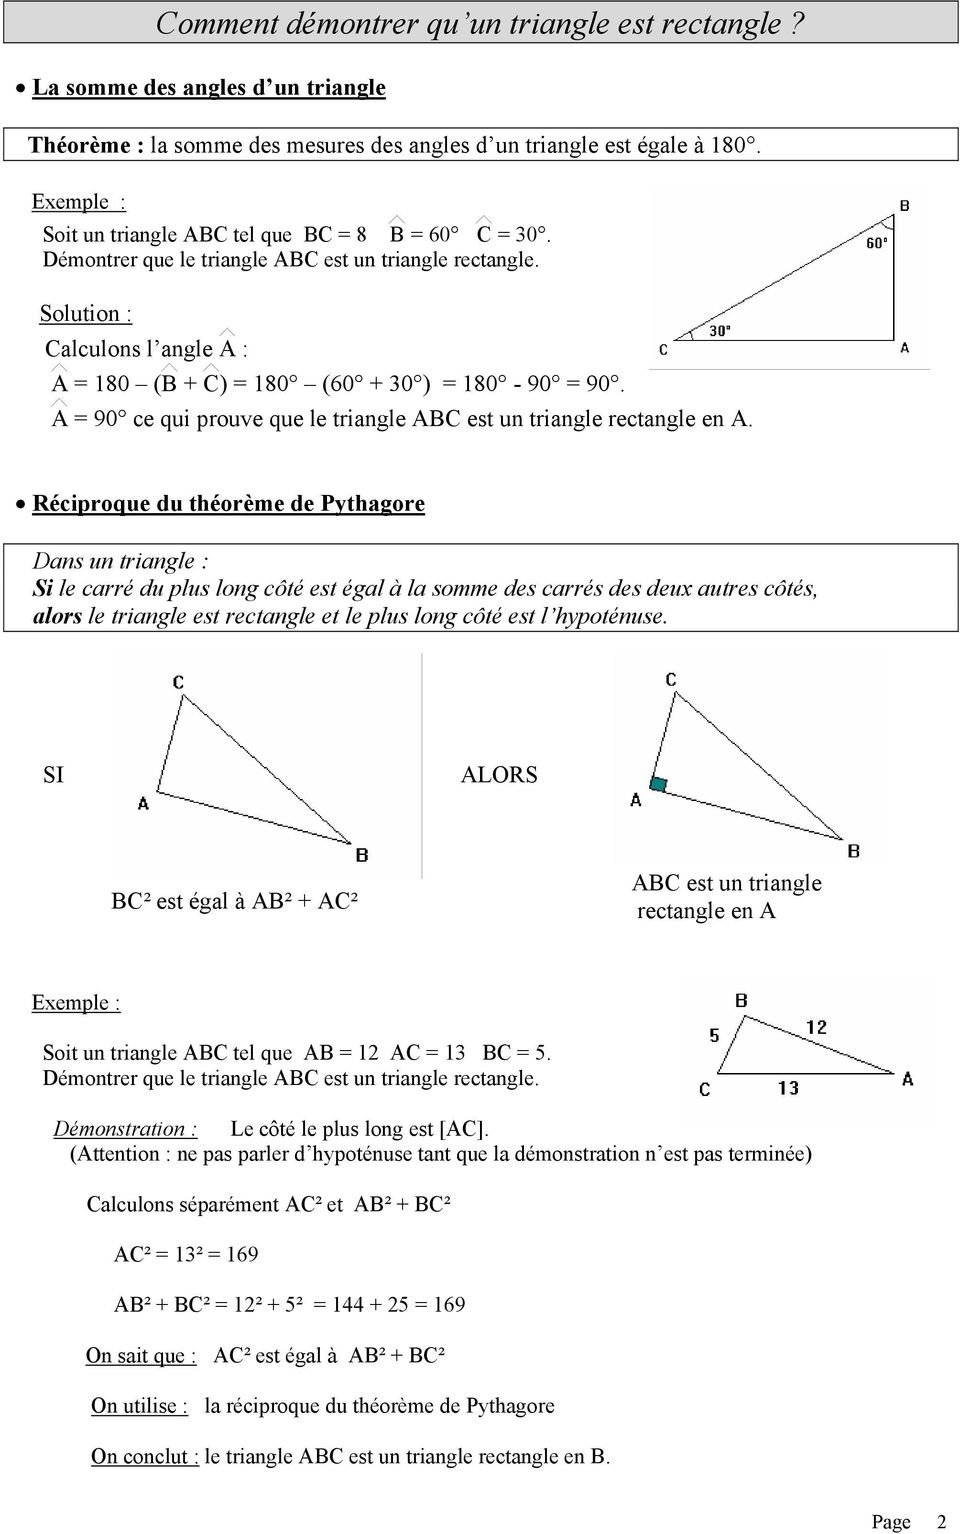 A = 90 ce qui prouve que le triangle ABC est un triangle rectangle en A.